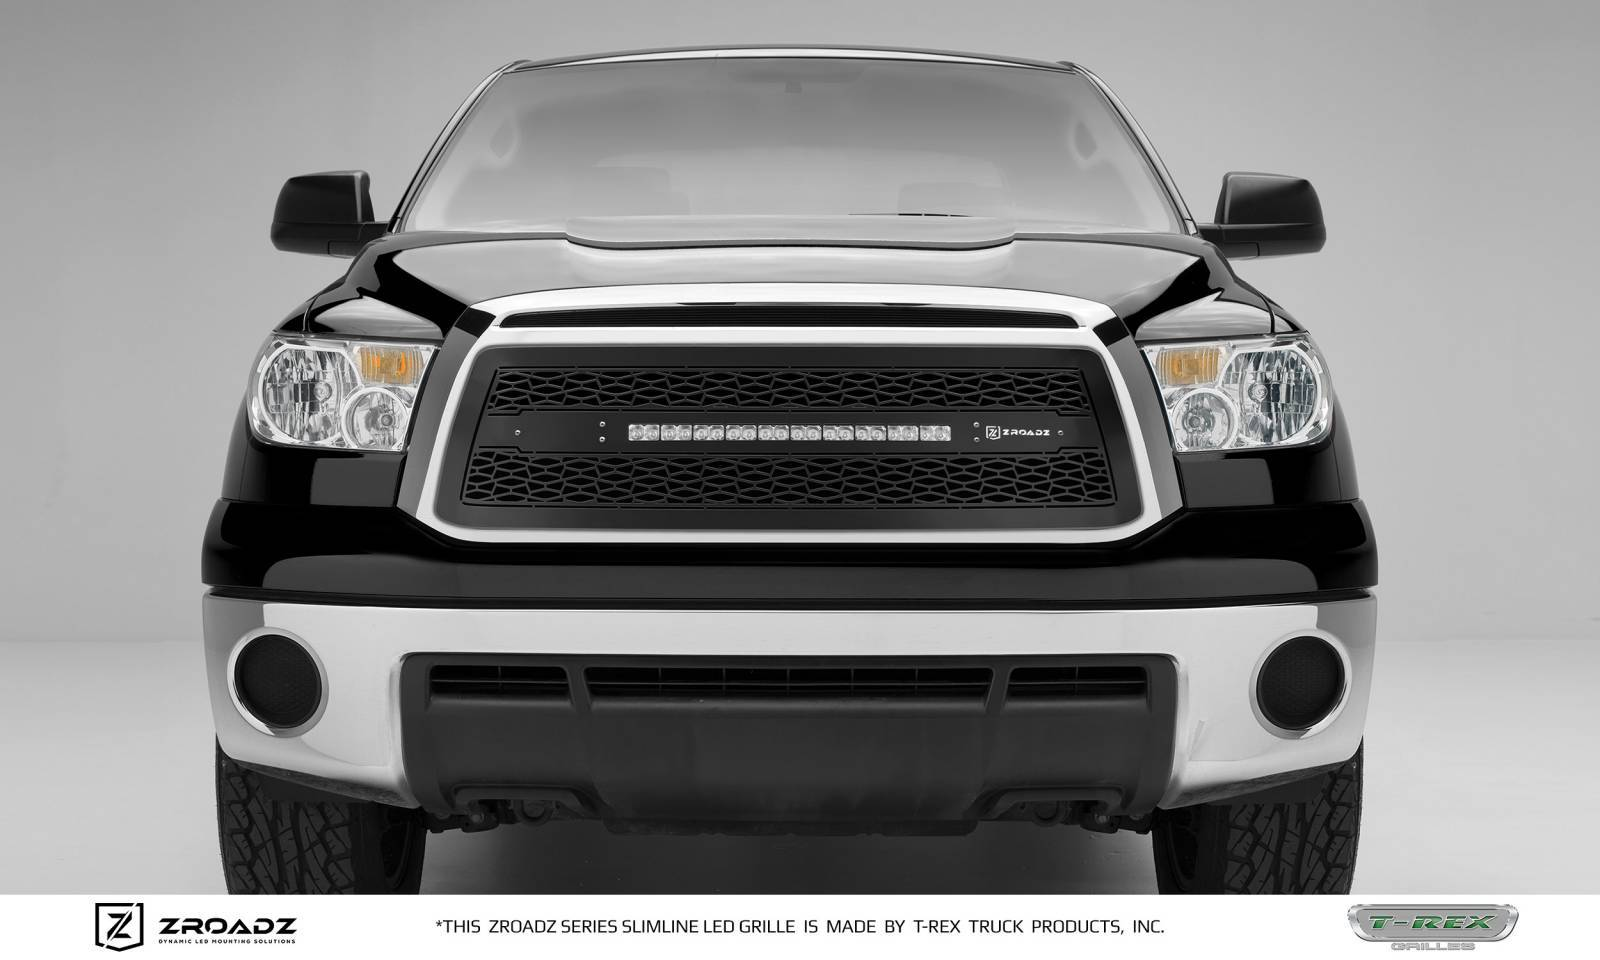 T-REX Toyota Tundra - ZROADZ Series - Main Insert - Grille w/ One 20 Inch Slim Line Single Row LED Light Bar - Includes Universal Wiring Harness - Part# Z319631